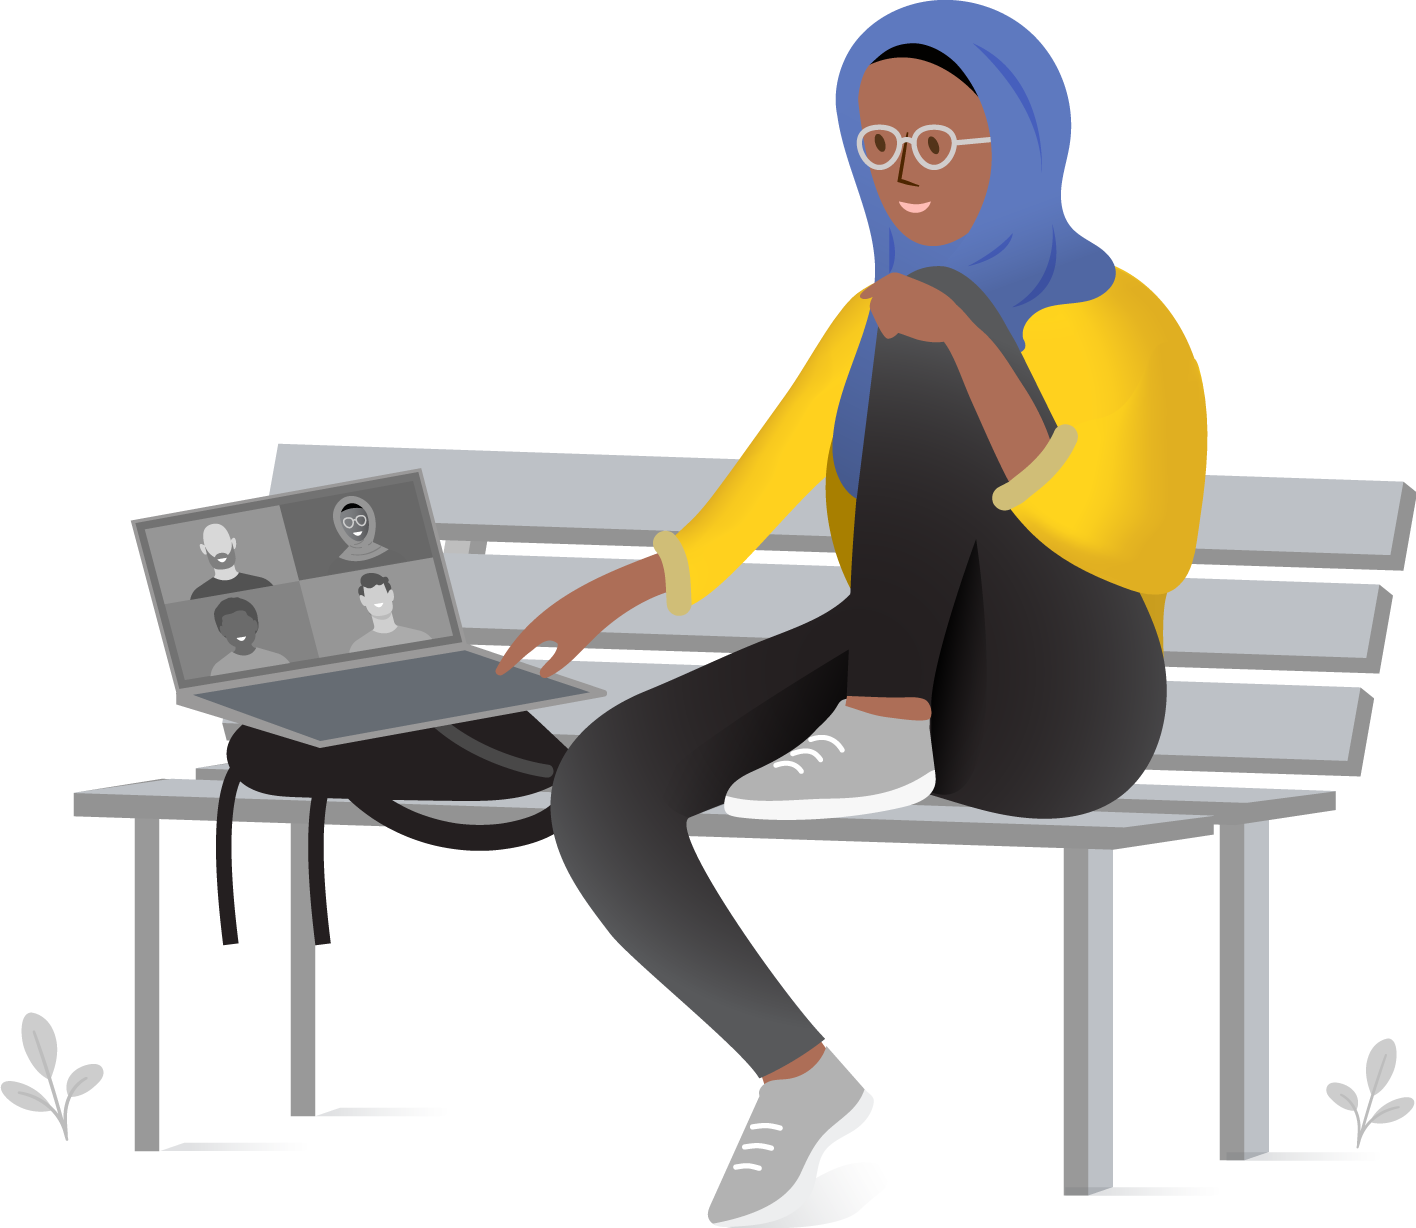 Woman on bench in virtual meeting